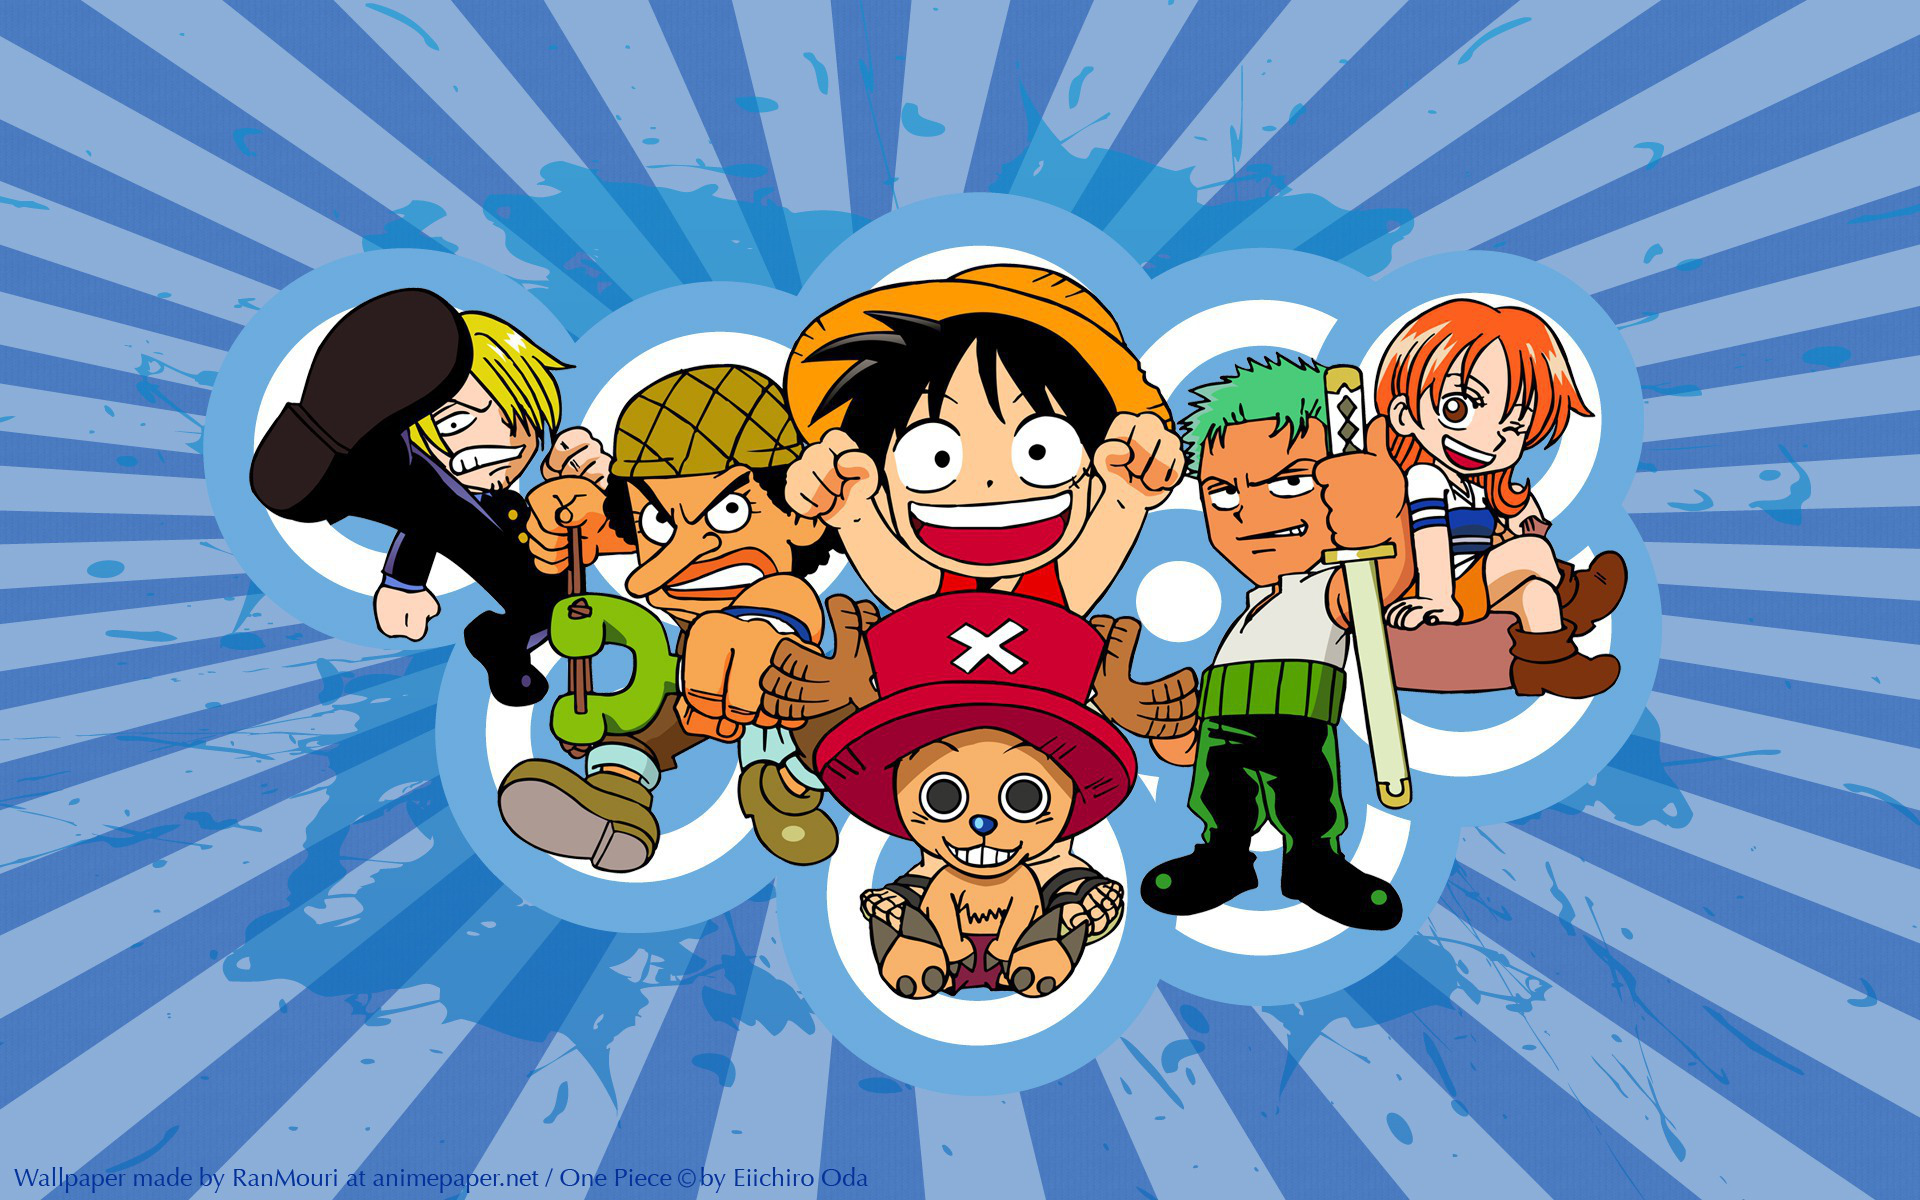 Anime - One Piece  Anime Chibi Sanji (One Piece) Nami (One Piece) Usopp (One Piece) Zoro Roronoa Monkey D. Luffy Tony Tony Chopper Wallpaper